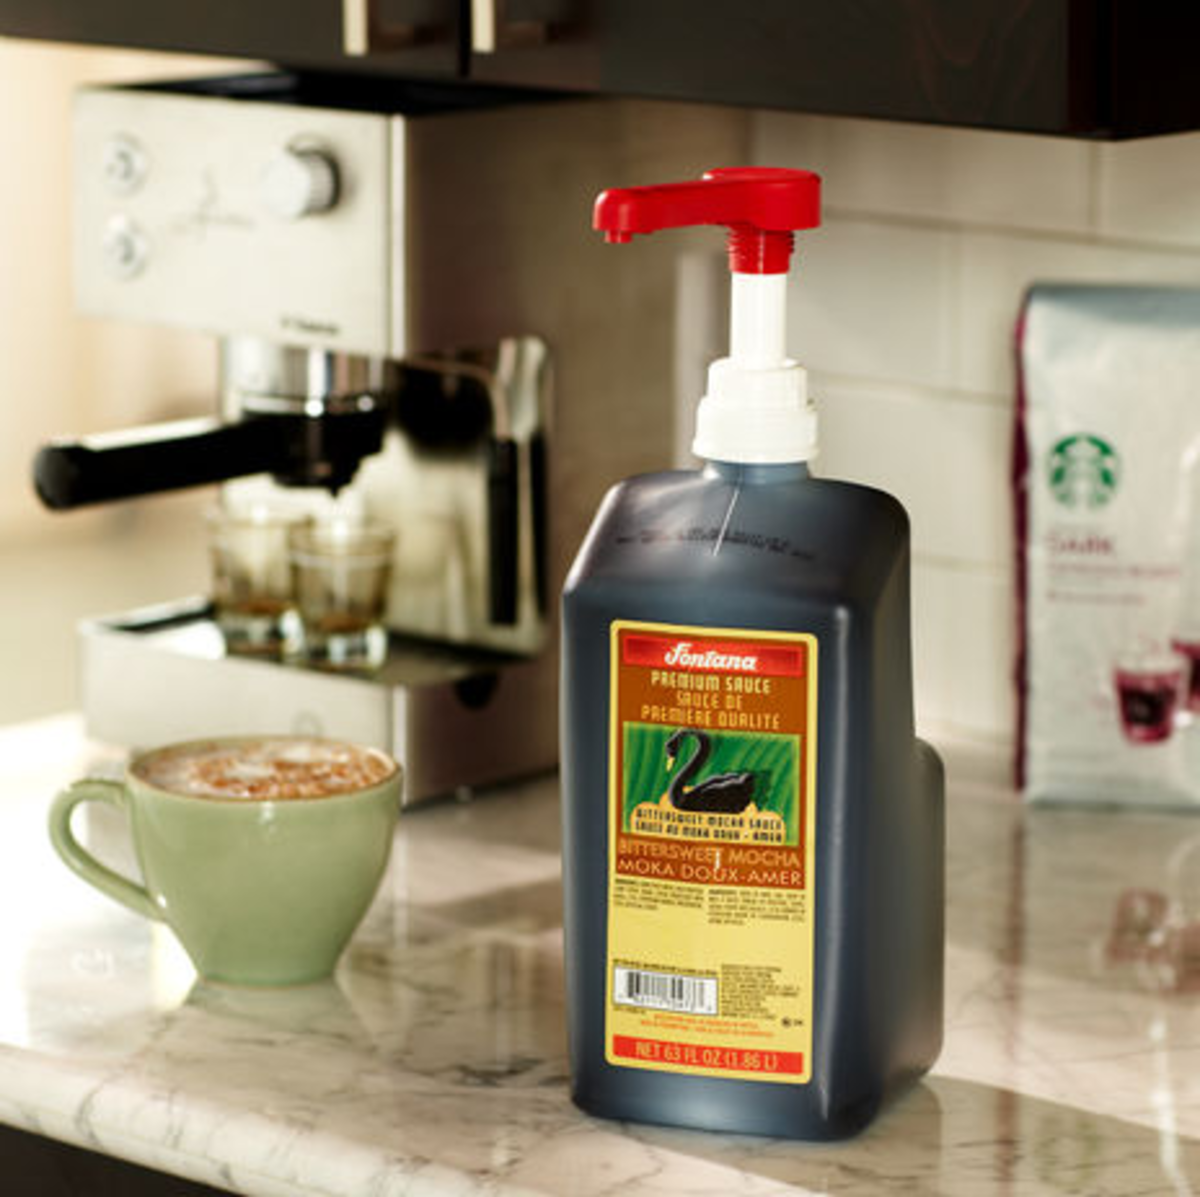 The Starbucks store offers Fontana sauces in place of mocha, white mocha, and some seasonal flavors.